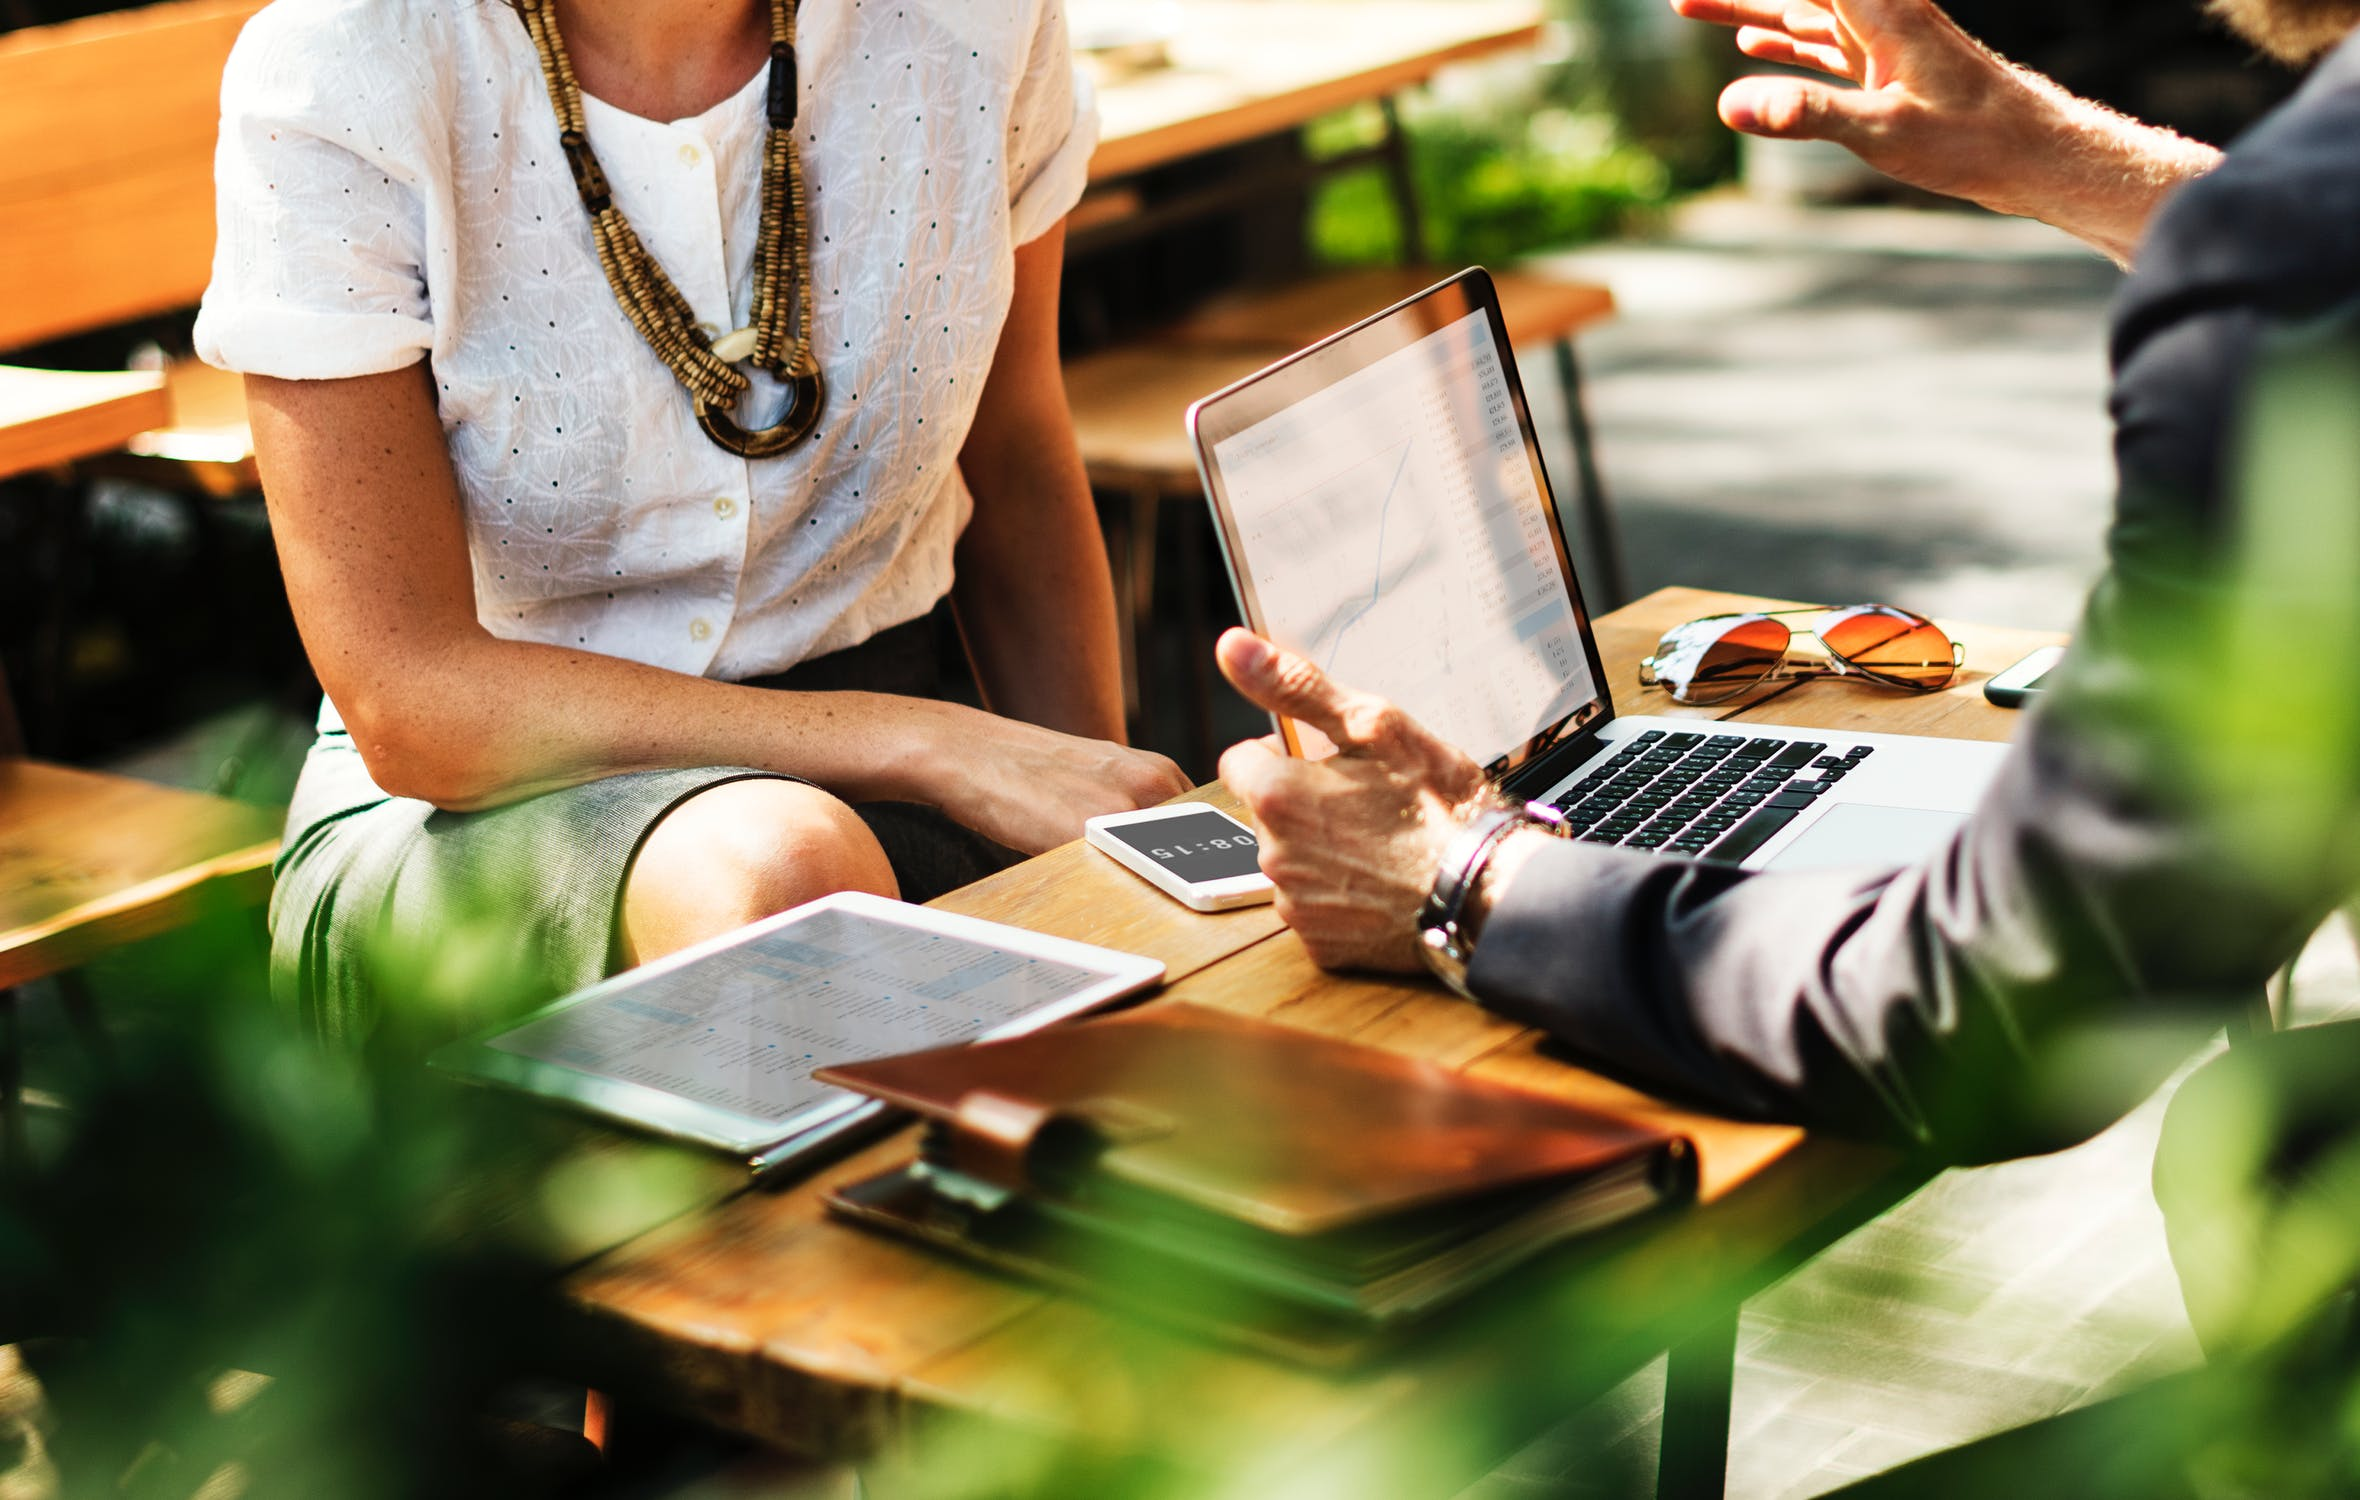 How to Maintain Positive Business Relationships